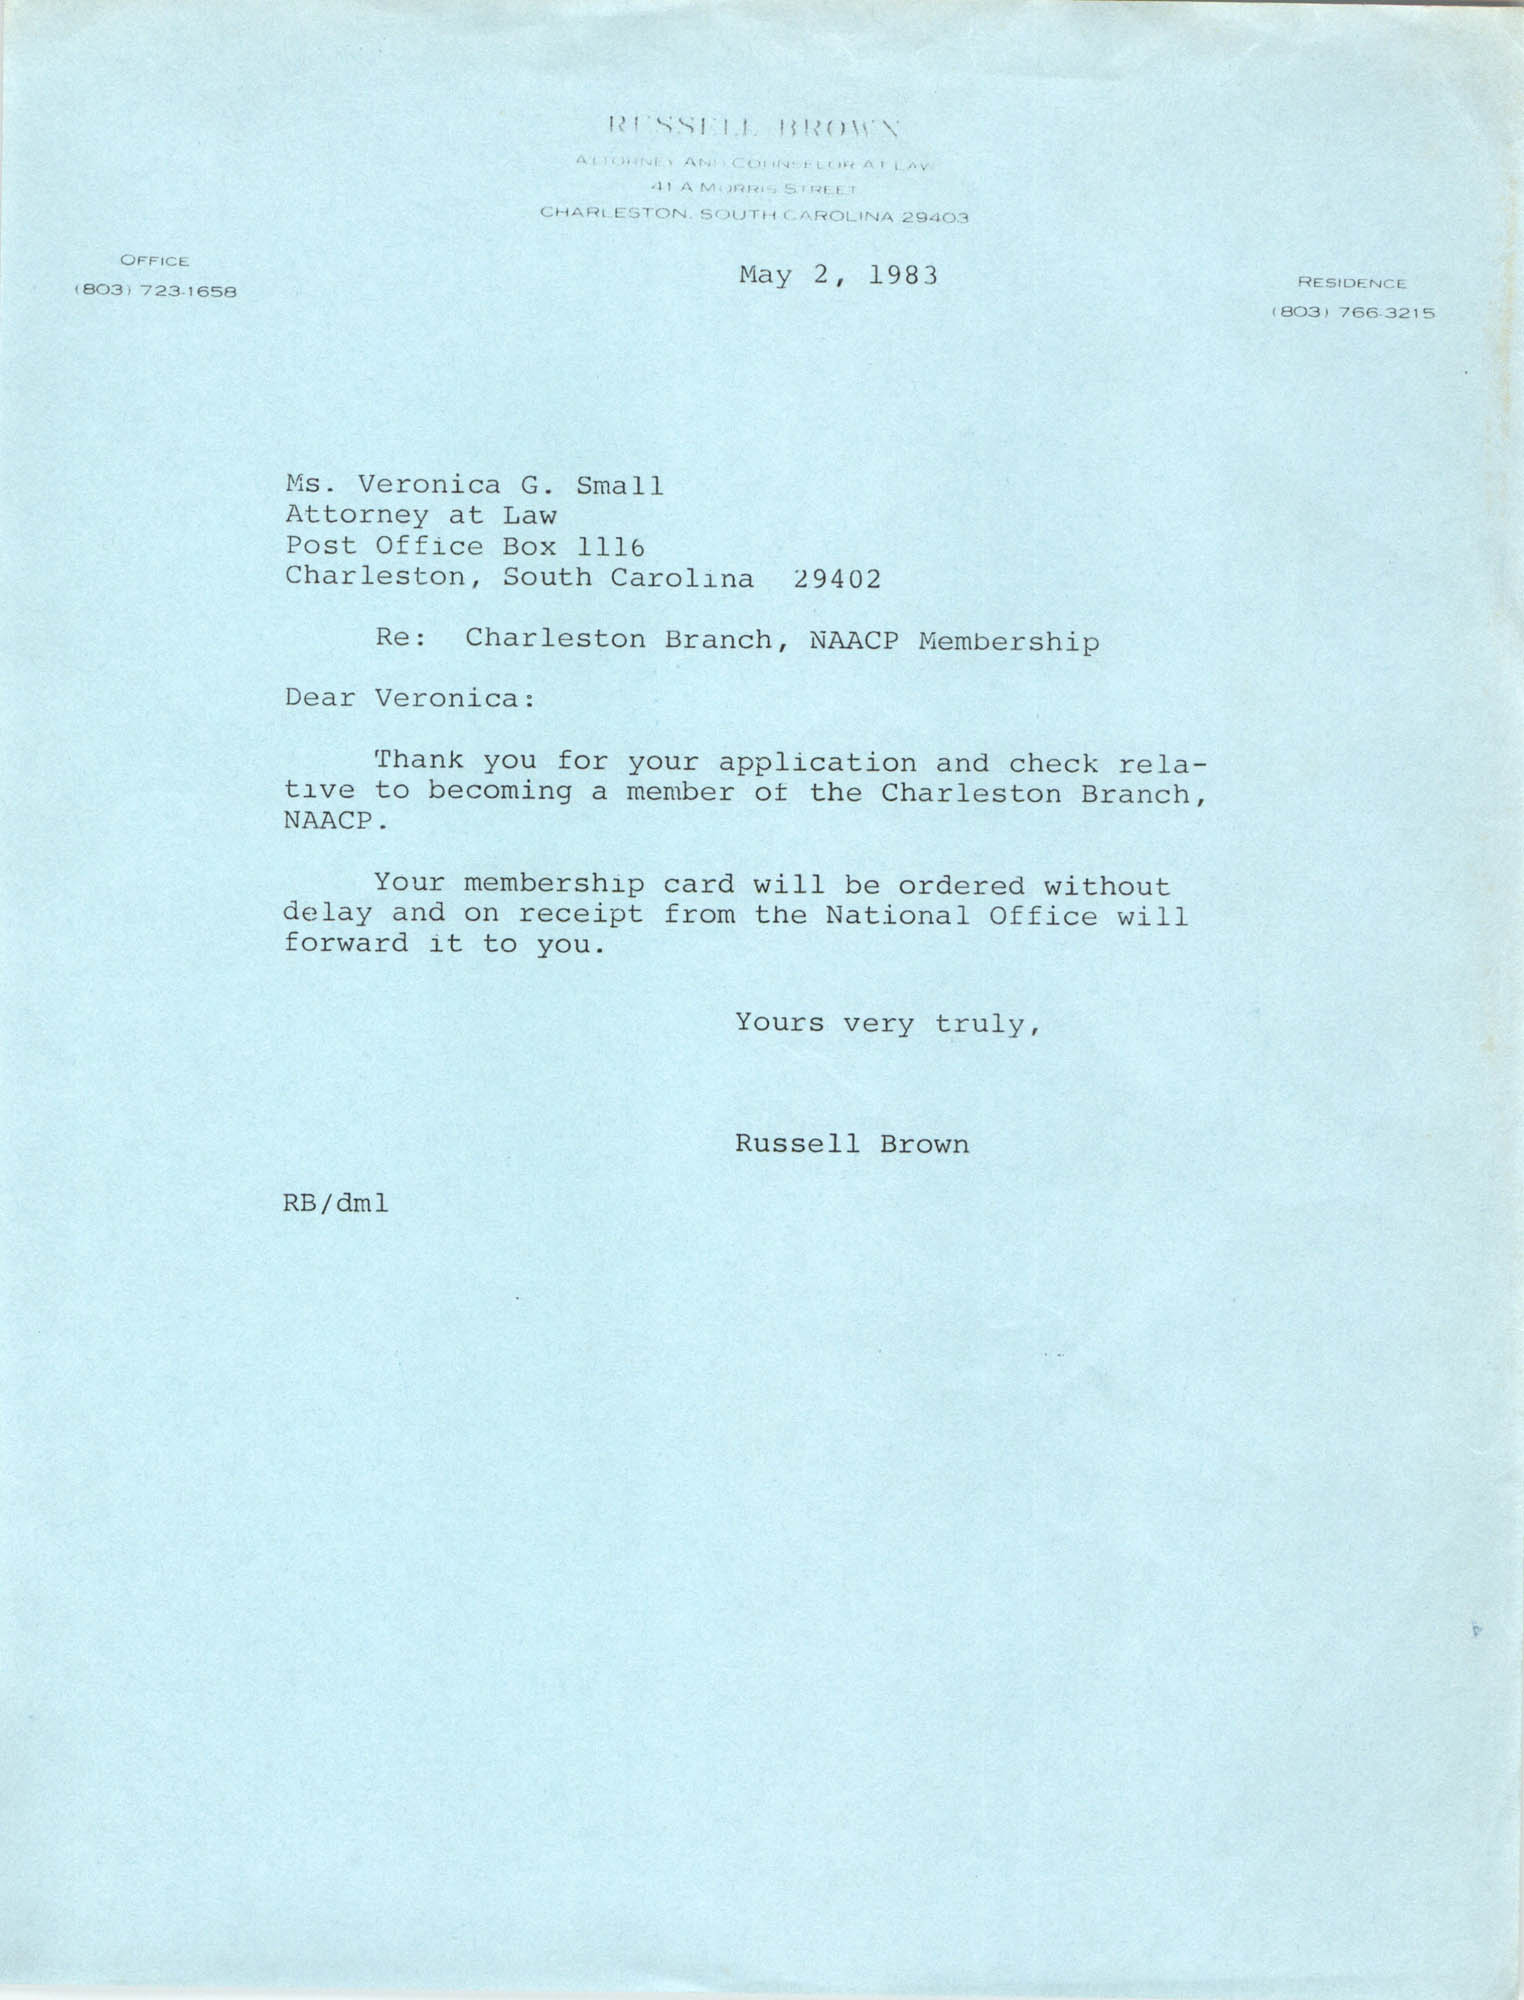 Letter from Russell Brown to Veronica G. Small, May 2, 1983